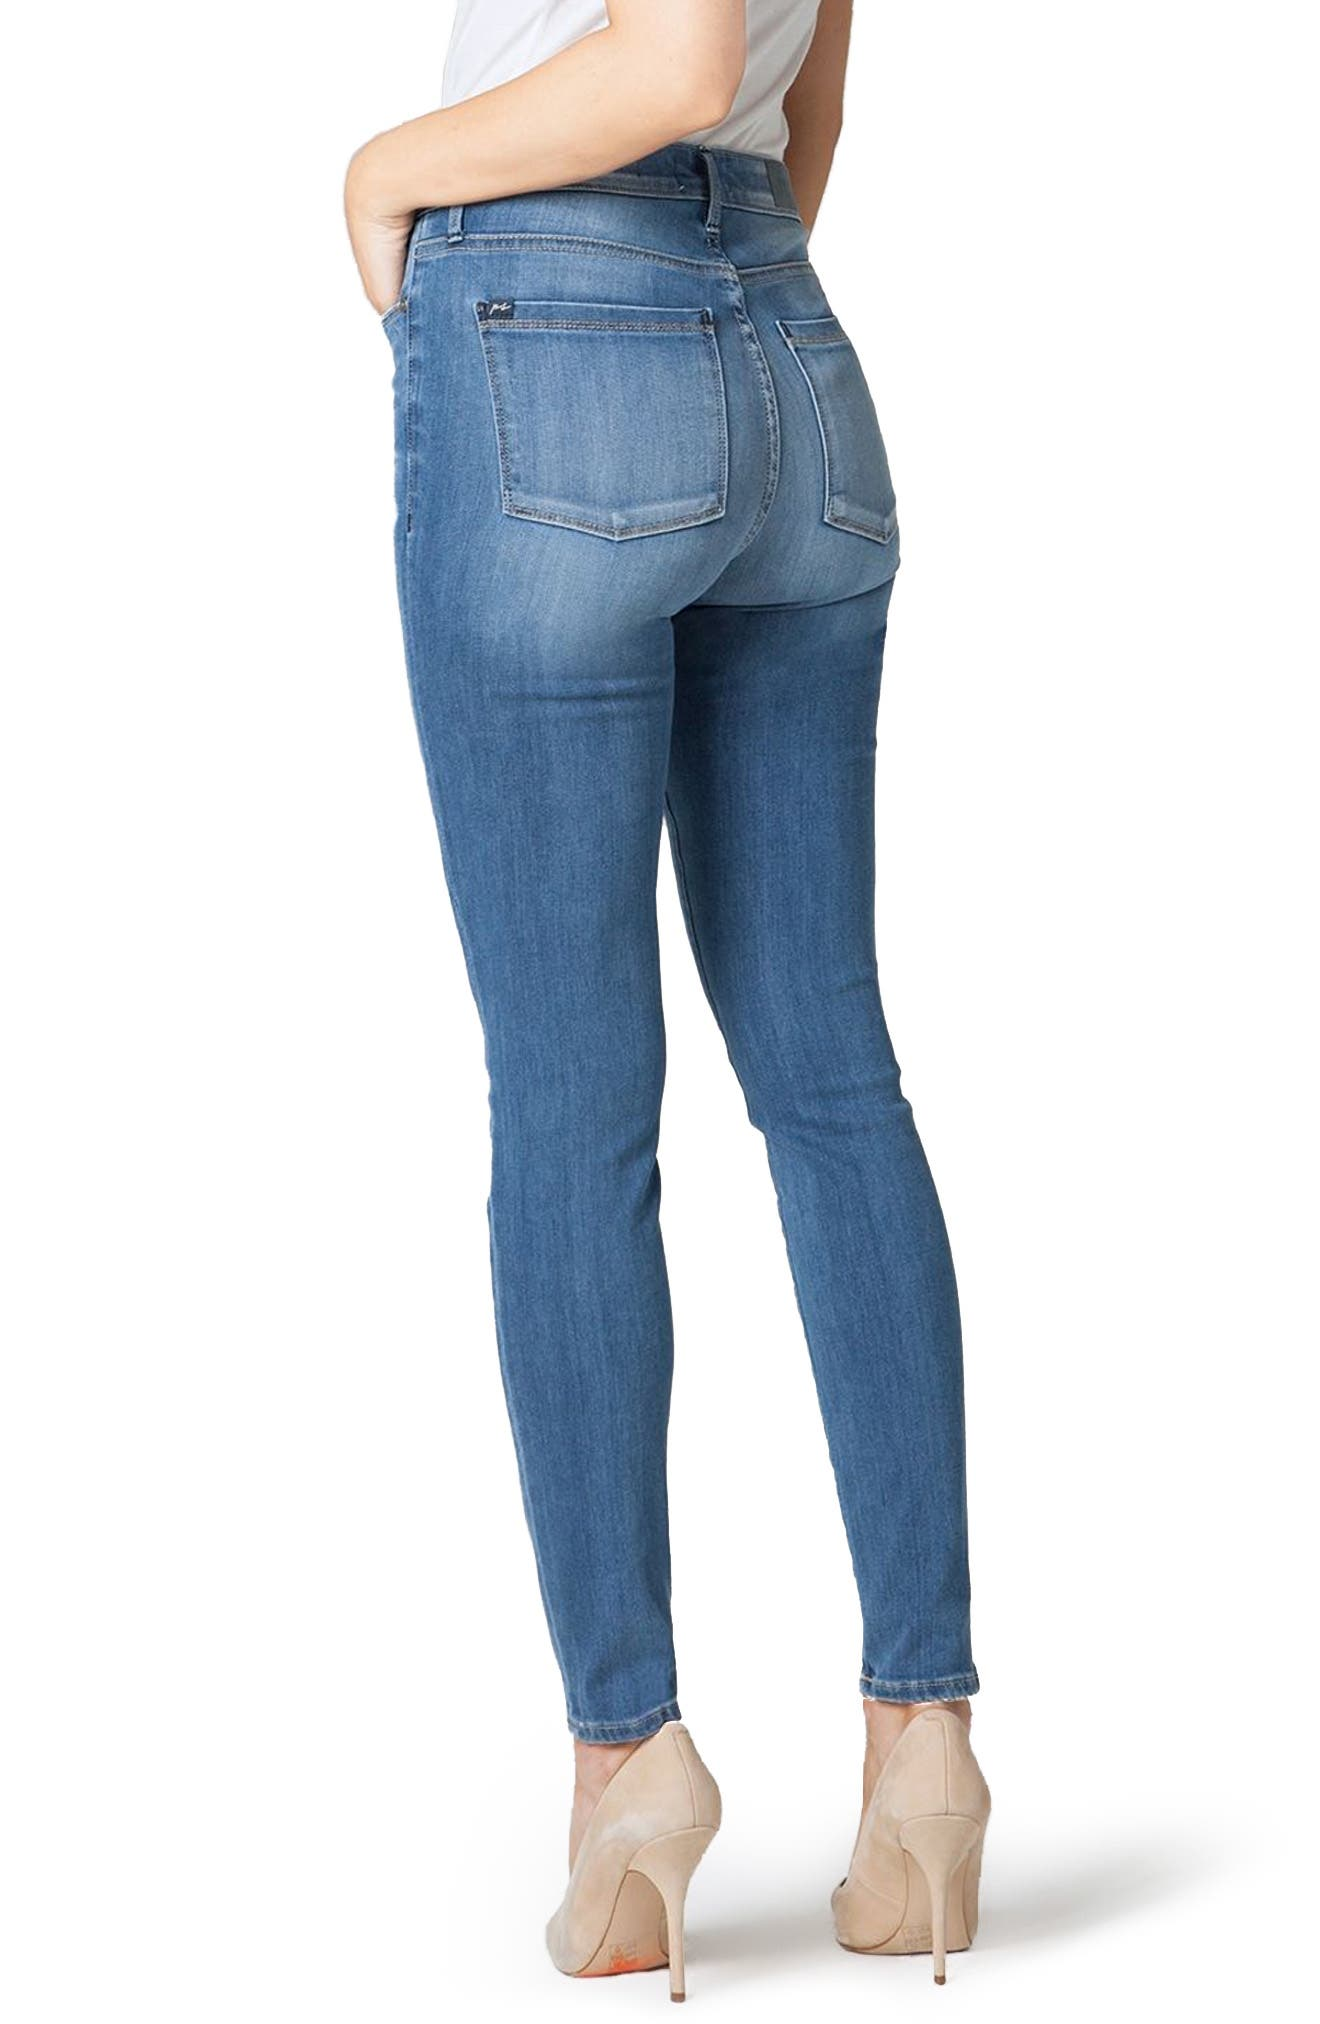 Bombshell High Waist Stretch Skinny Jeans,                             Alternate thumbnail 2, color,                             461